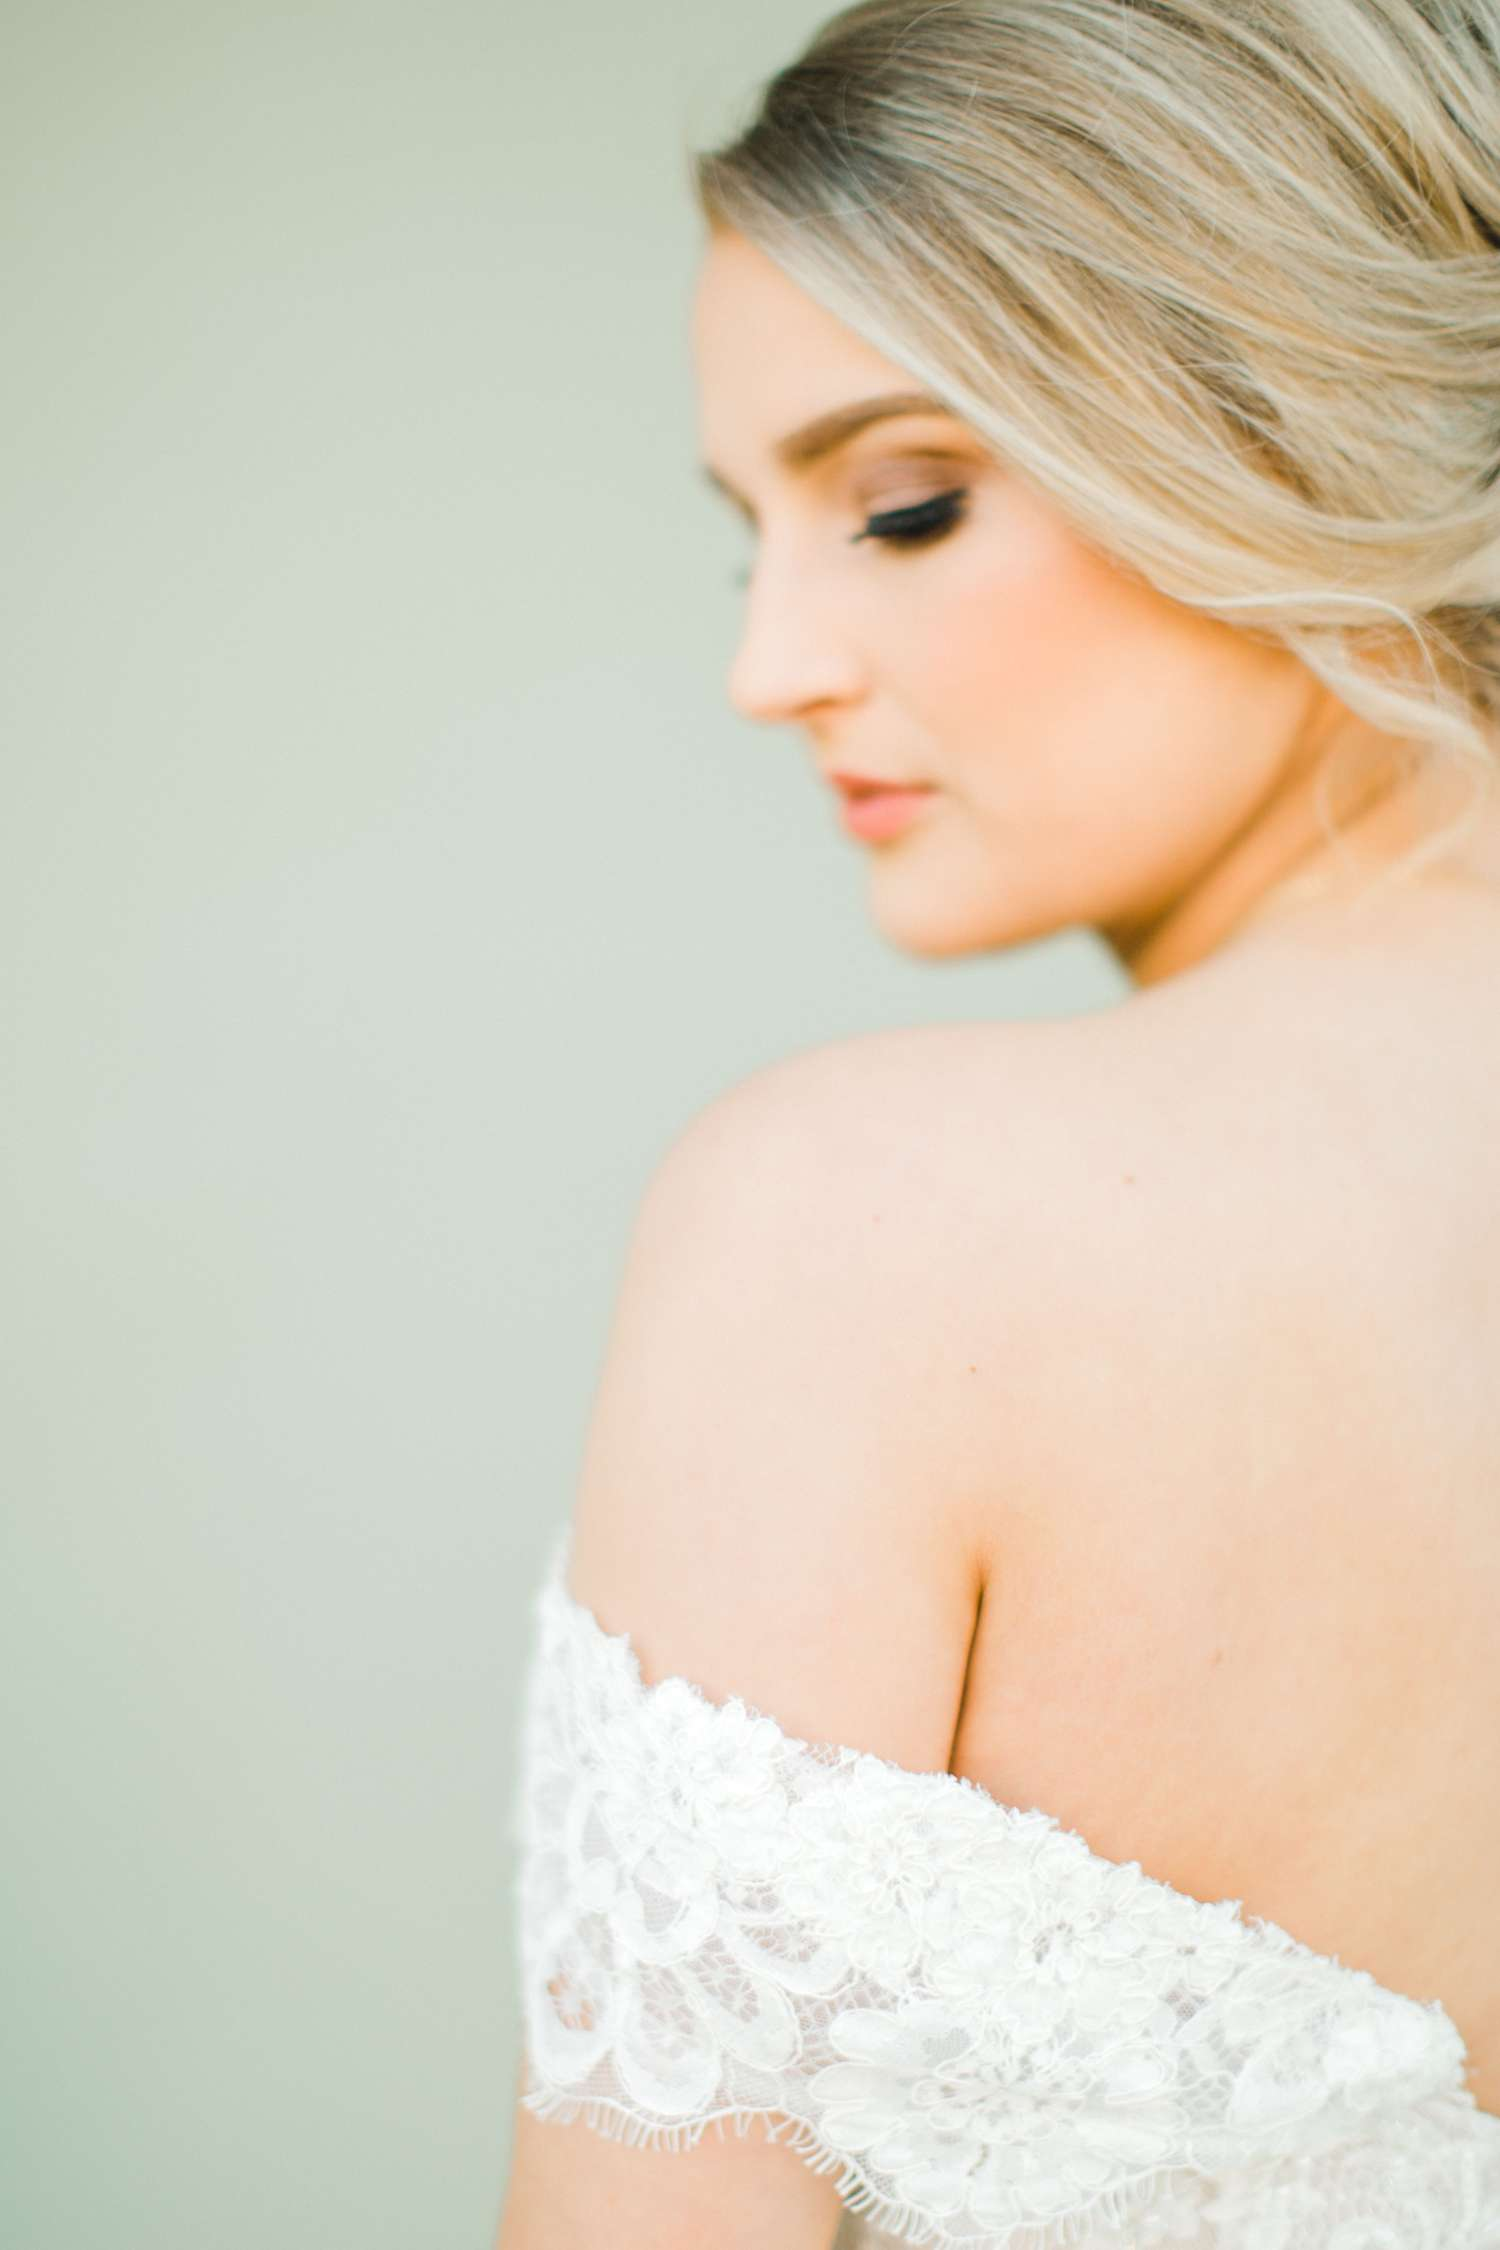 MORGAN+BOONE+BRIDALS+WEDDING+PHOTOGRAPHER_0031.jpg